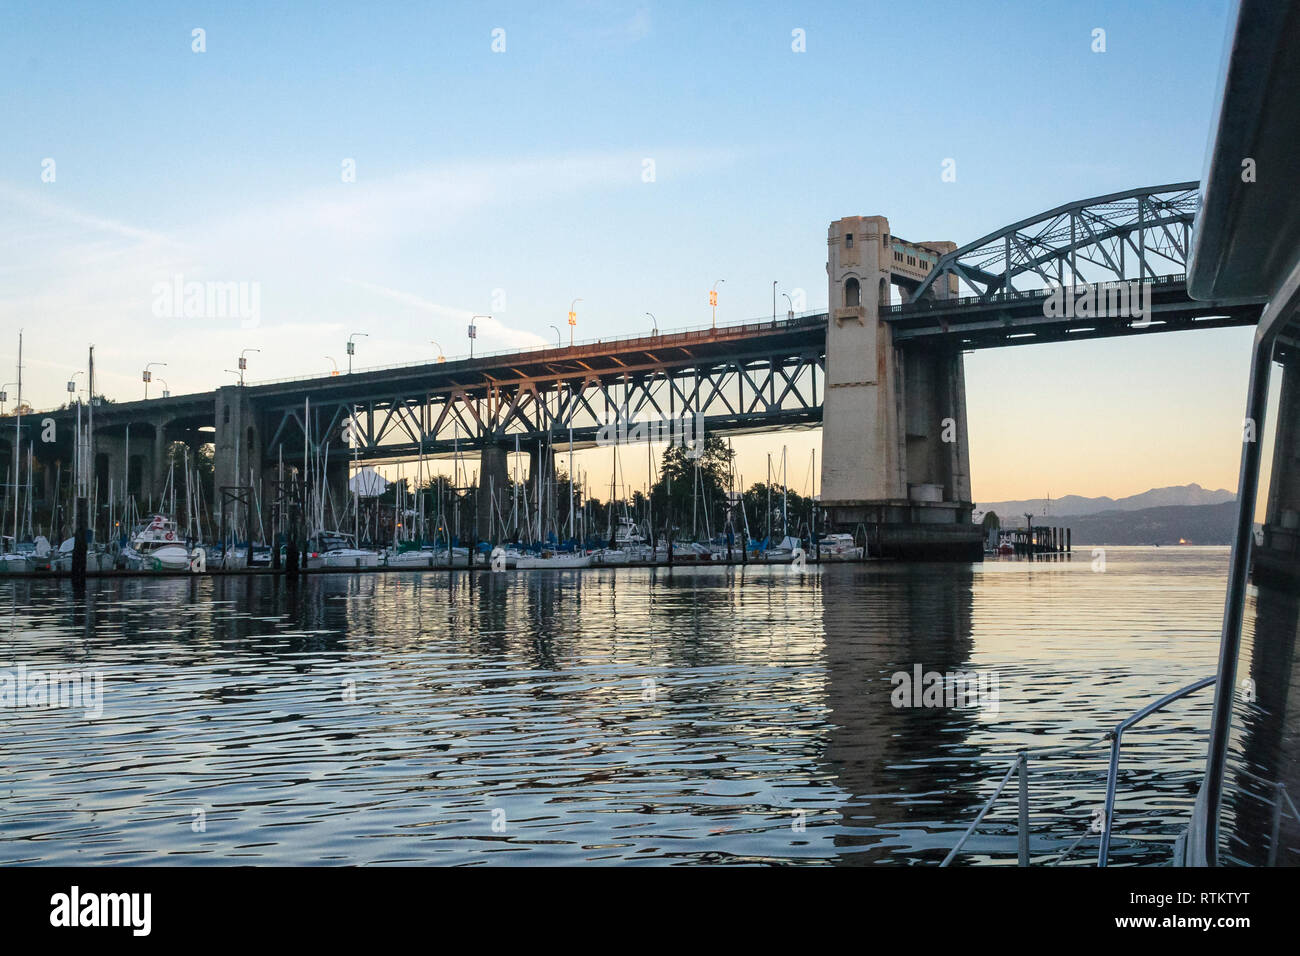 A view of False Creek and the Burrard Street Bridge at dawn, from aboard a boat about to pass under the bridge on its way out to sea from Vancouver. - Stock Image